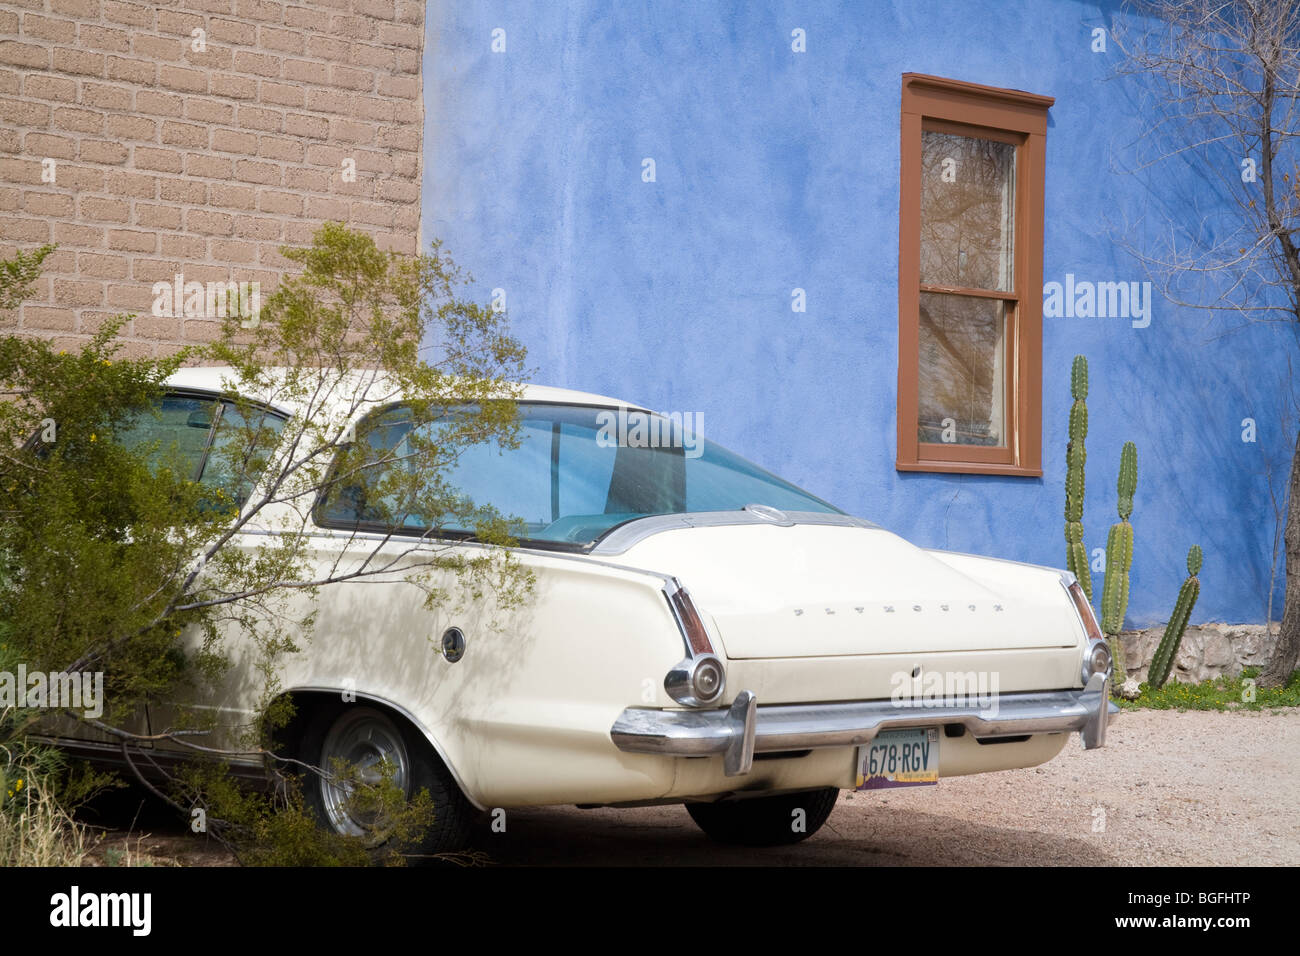 Old Plymouth Car Stock Photos & Old Plymouth Car Stock Images - Alamy